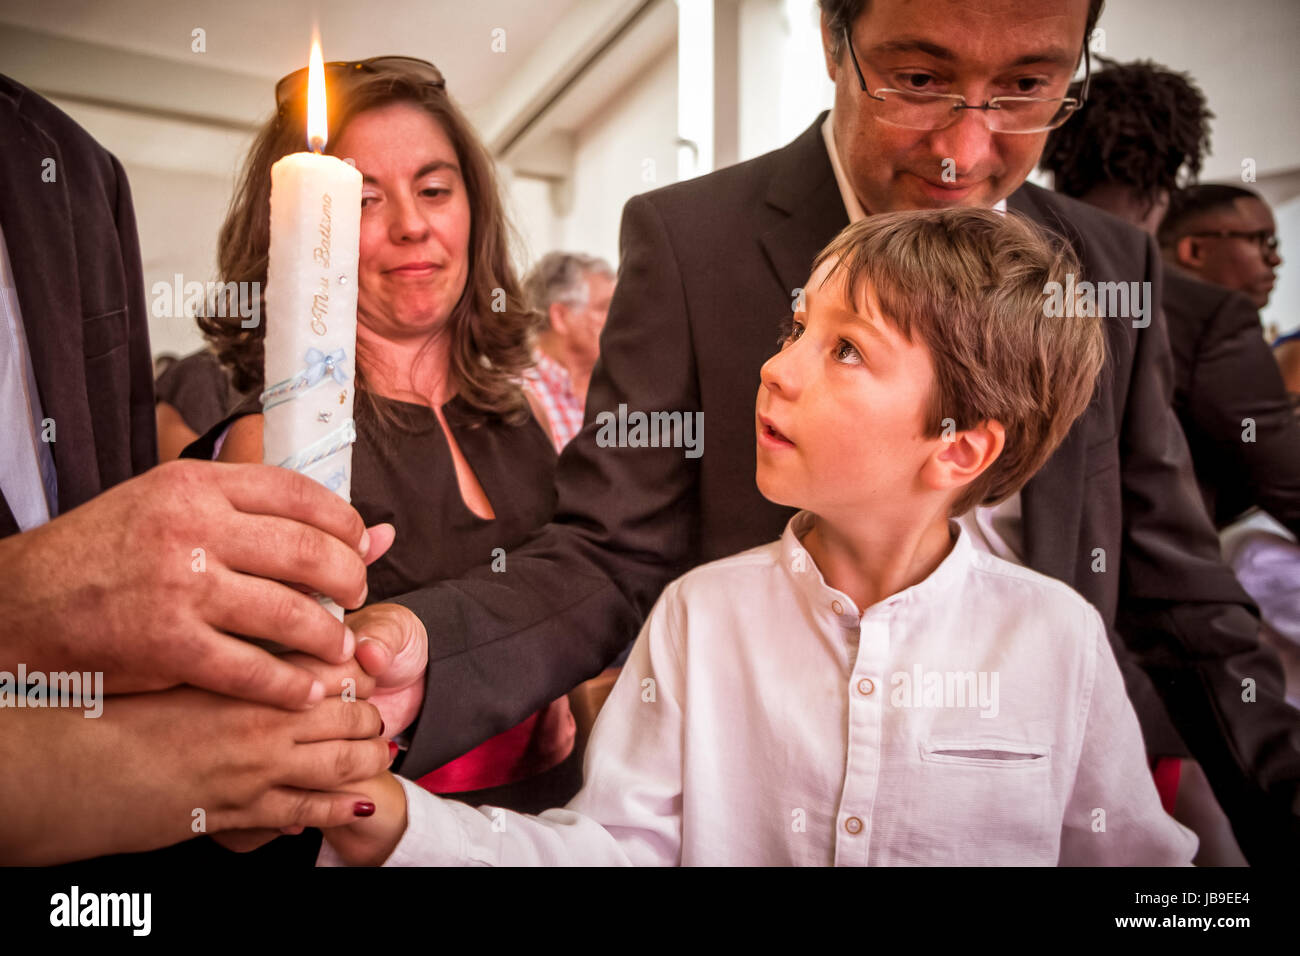 AMADORA/PORTUGAL-25 AUG 2015-Child picking up the candle of his baptism accompanied by the parents and godparents - Stock Image